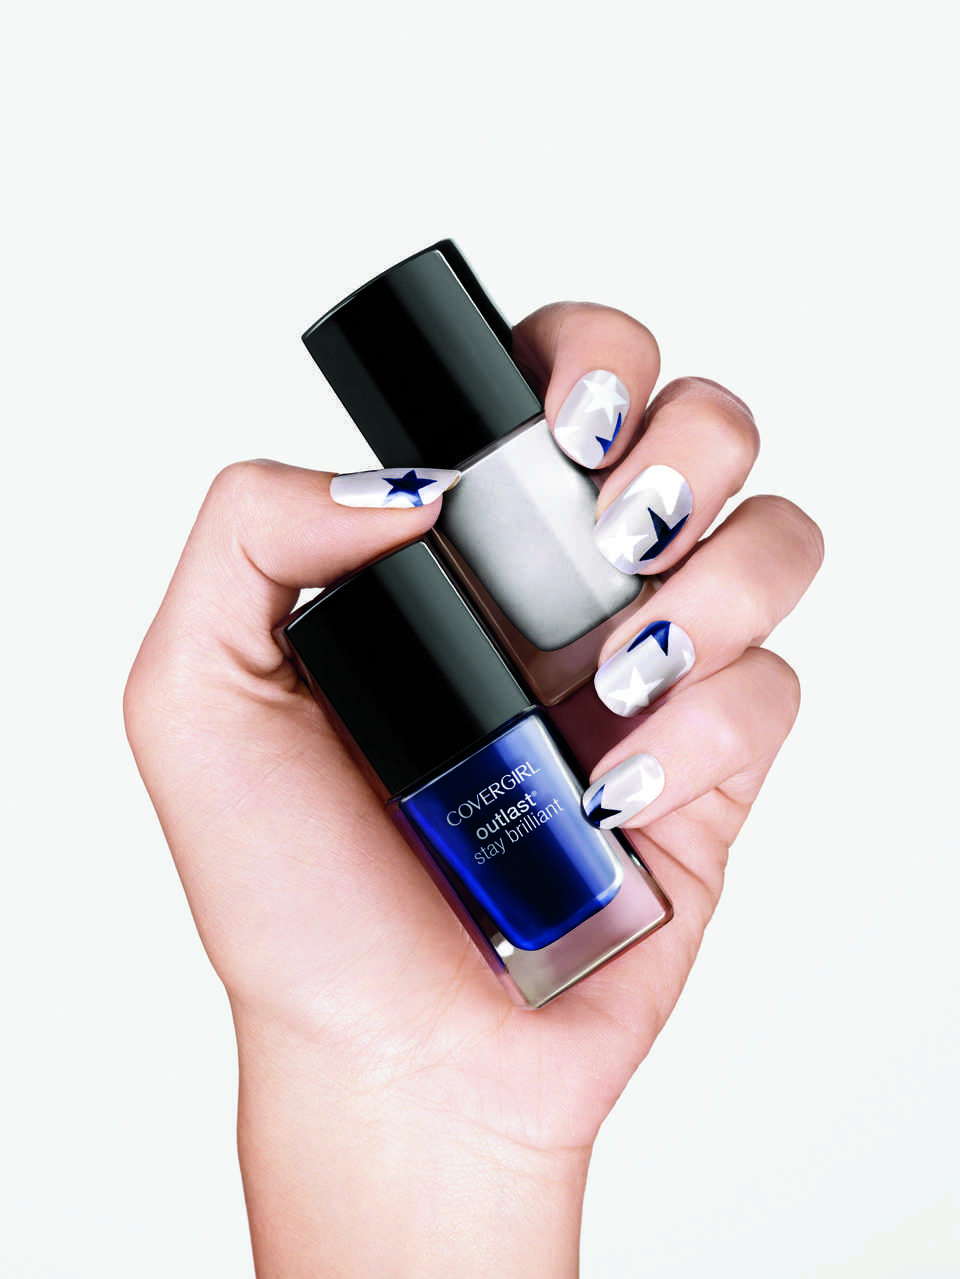 CoverGirl Teams Up with NFL on \'Fanicure\' Nail Polish Sets ...